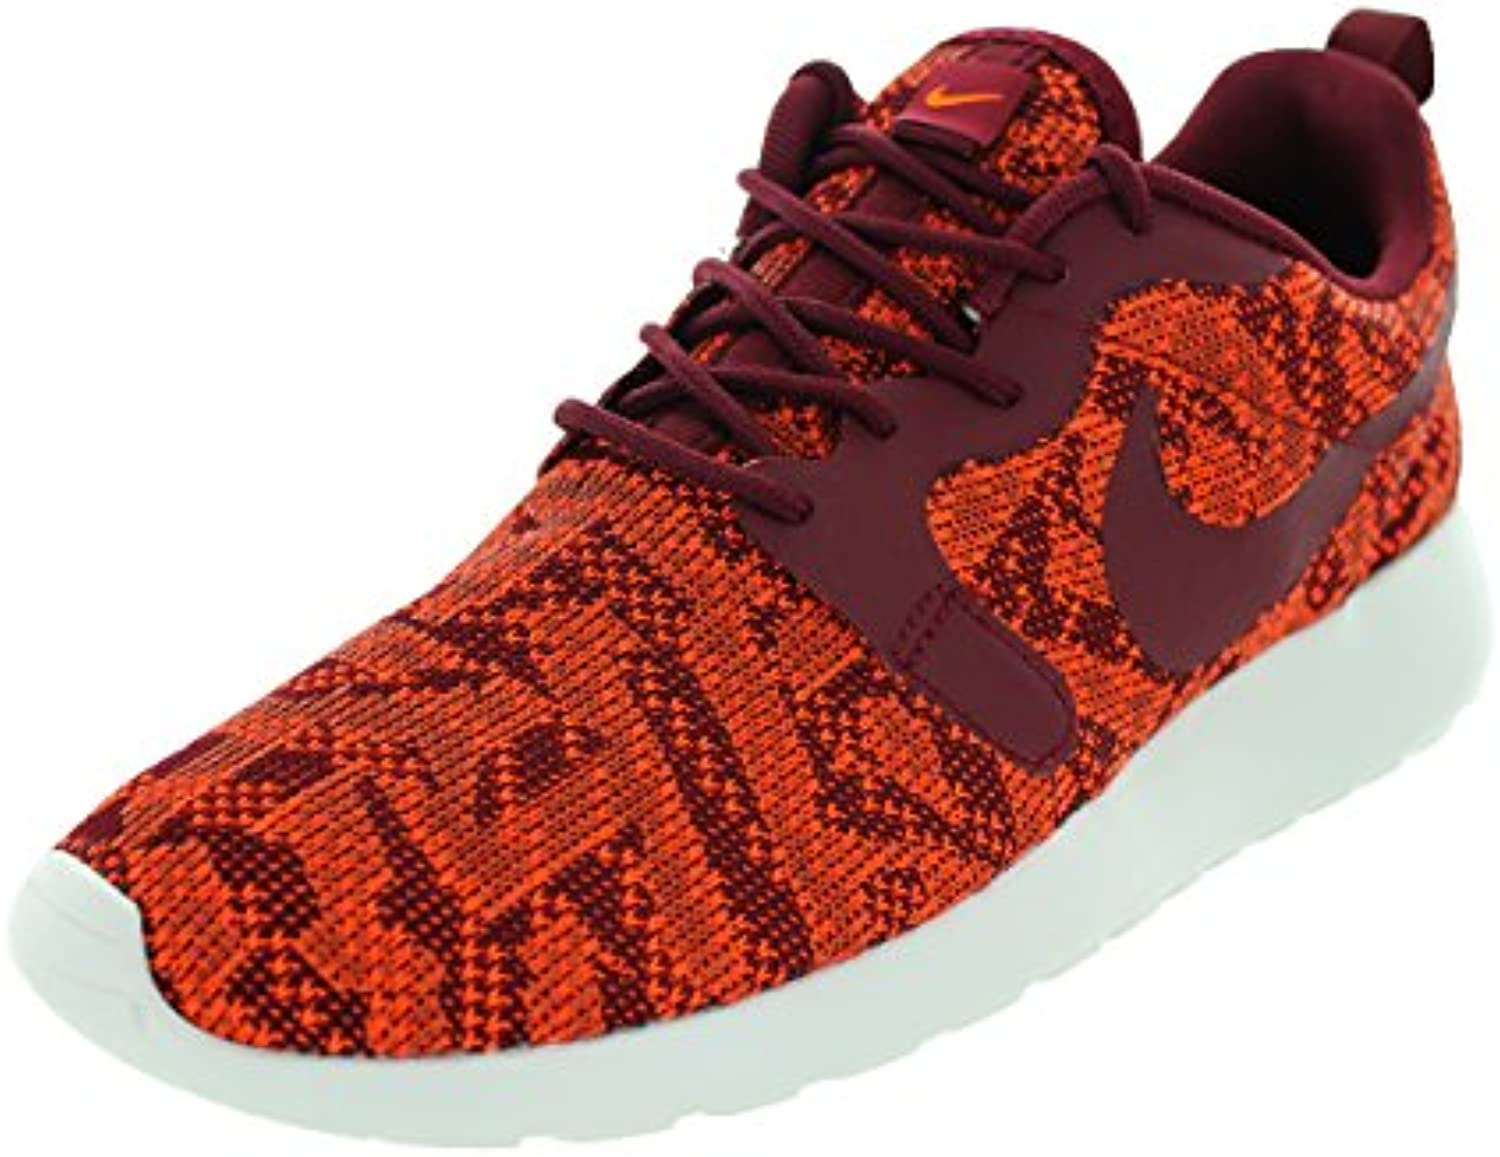 Zapatillas de running Nike Roshe One KJCRD Total Orange / Team Red / Sail 6.5 Mujeres EE. UU.